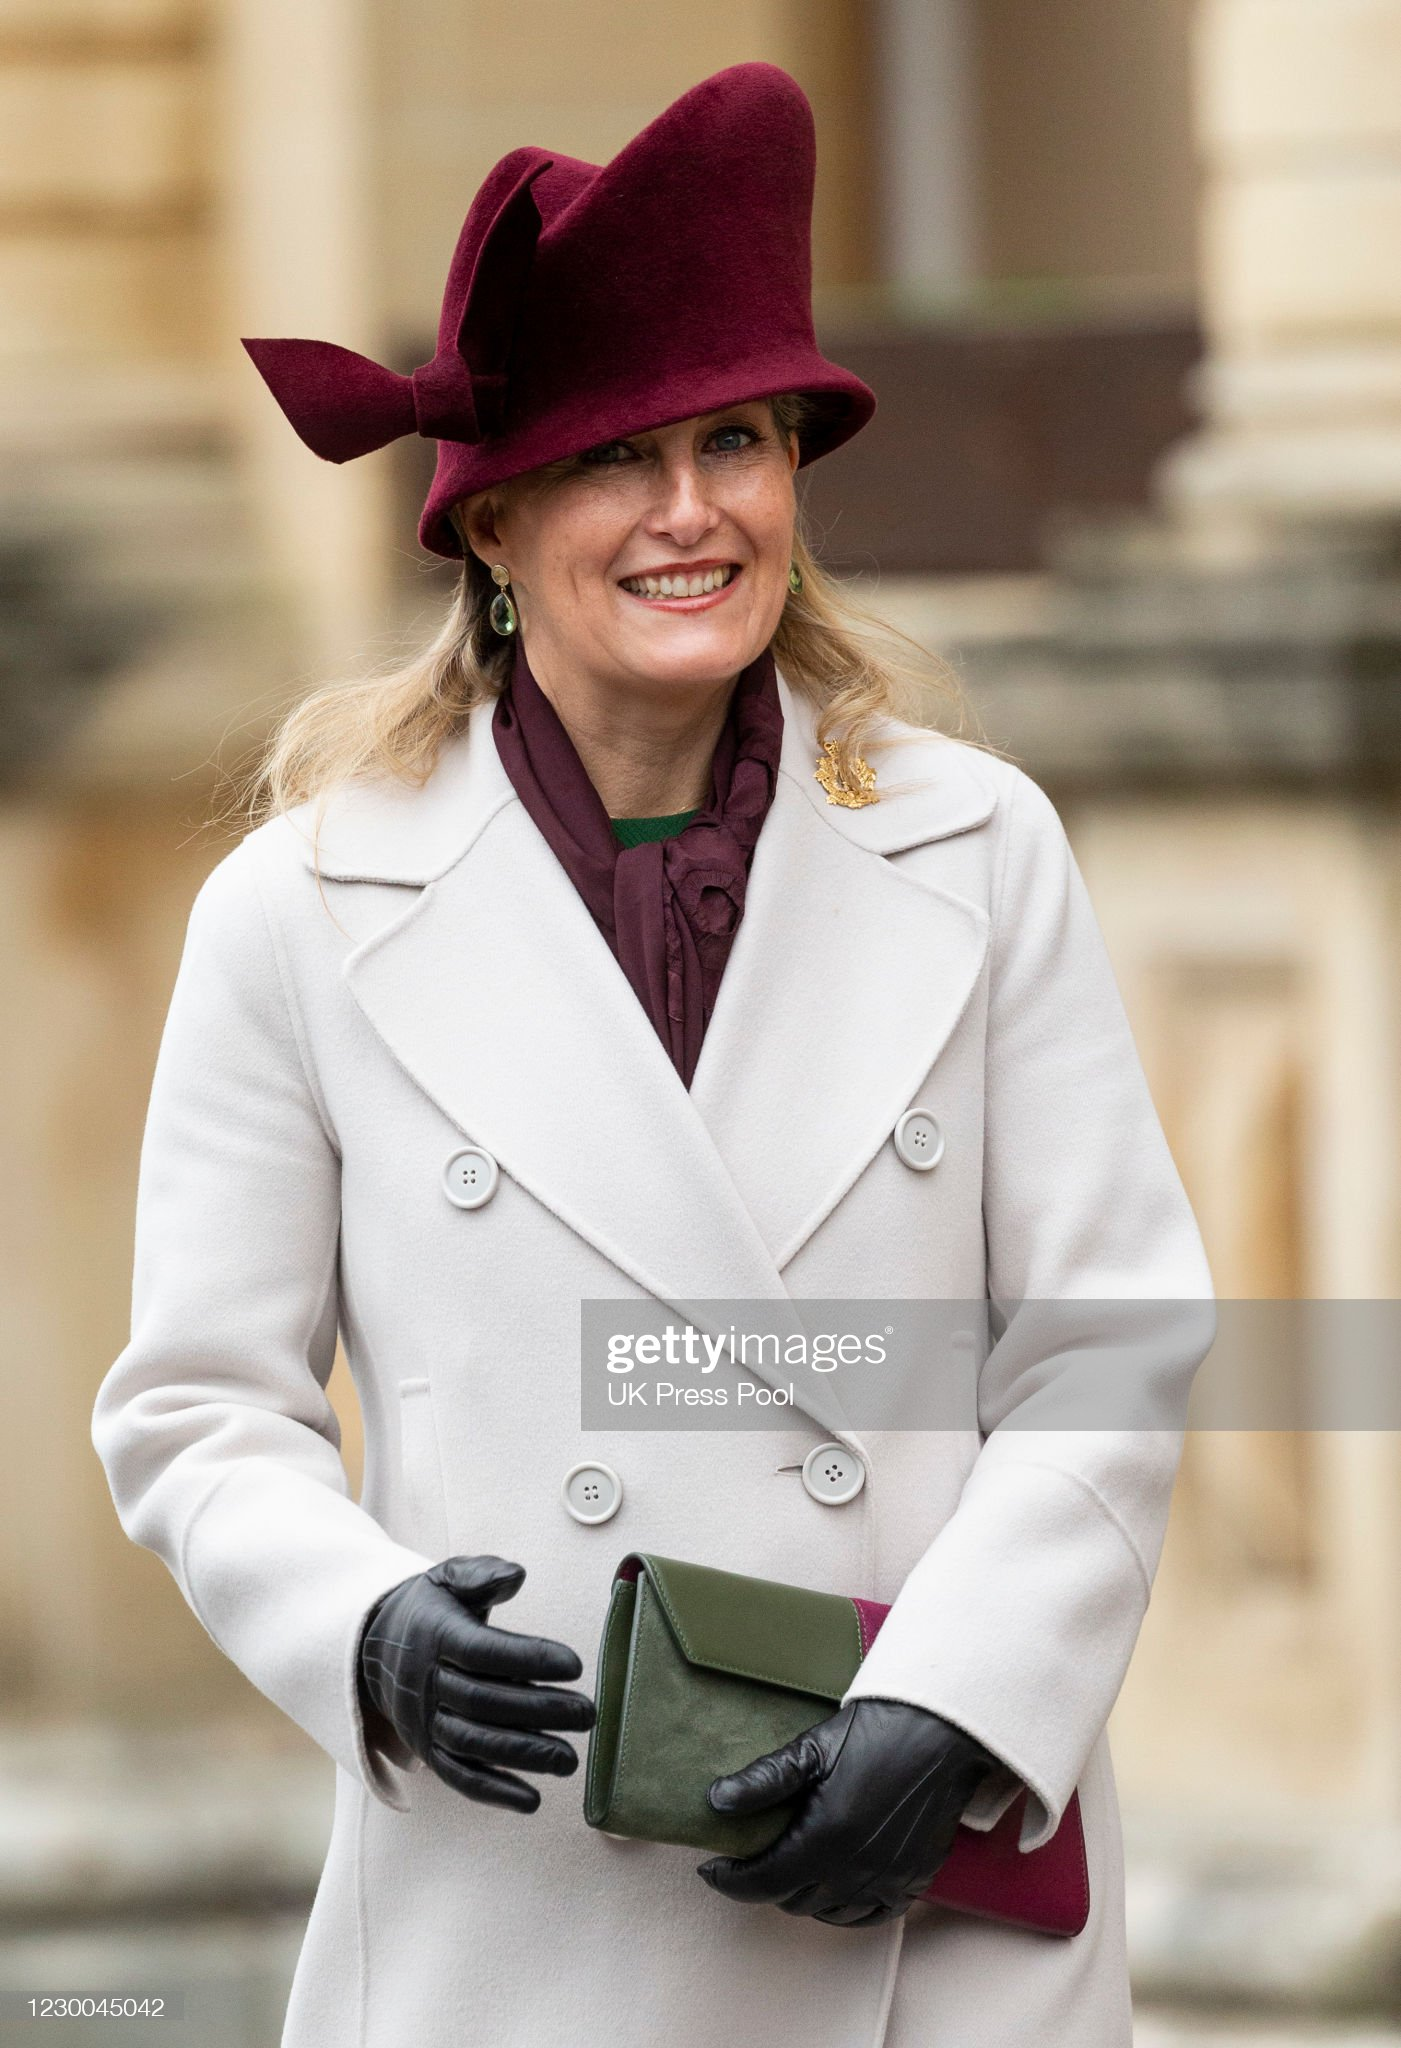 https://media.gettyimages.com/photos/sophie-countess-of-wessex-visits-the-corps-of-army-music-for-a-and-picture-id1230045042?s=2048x2048